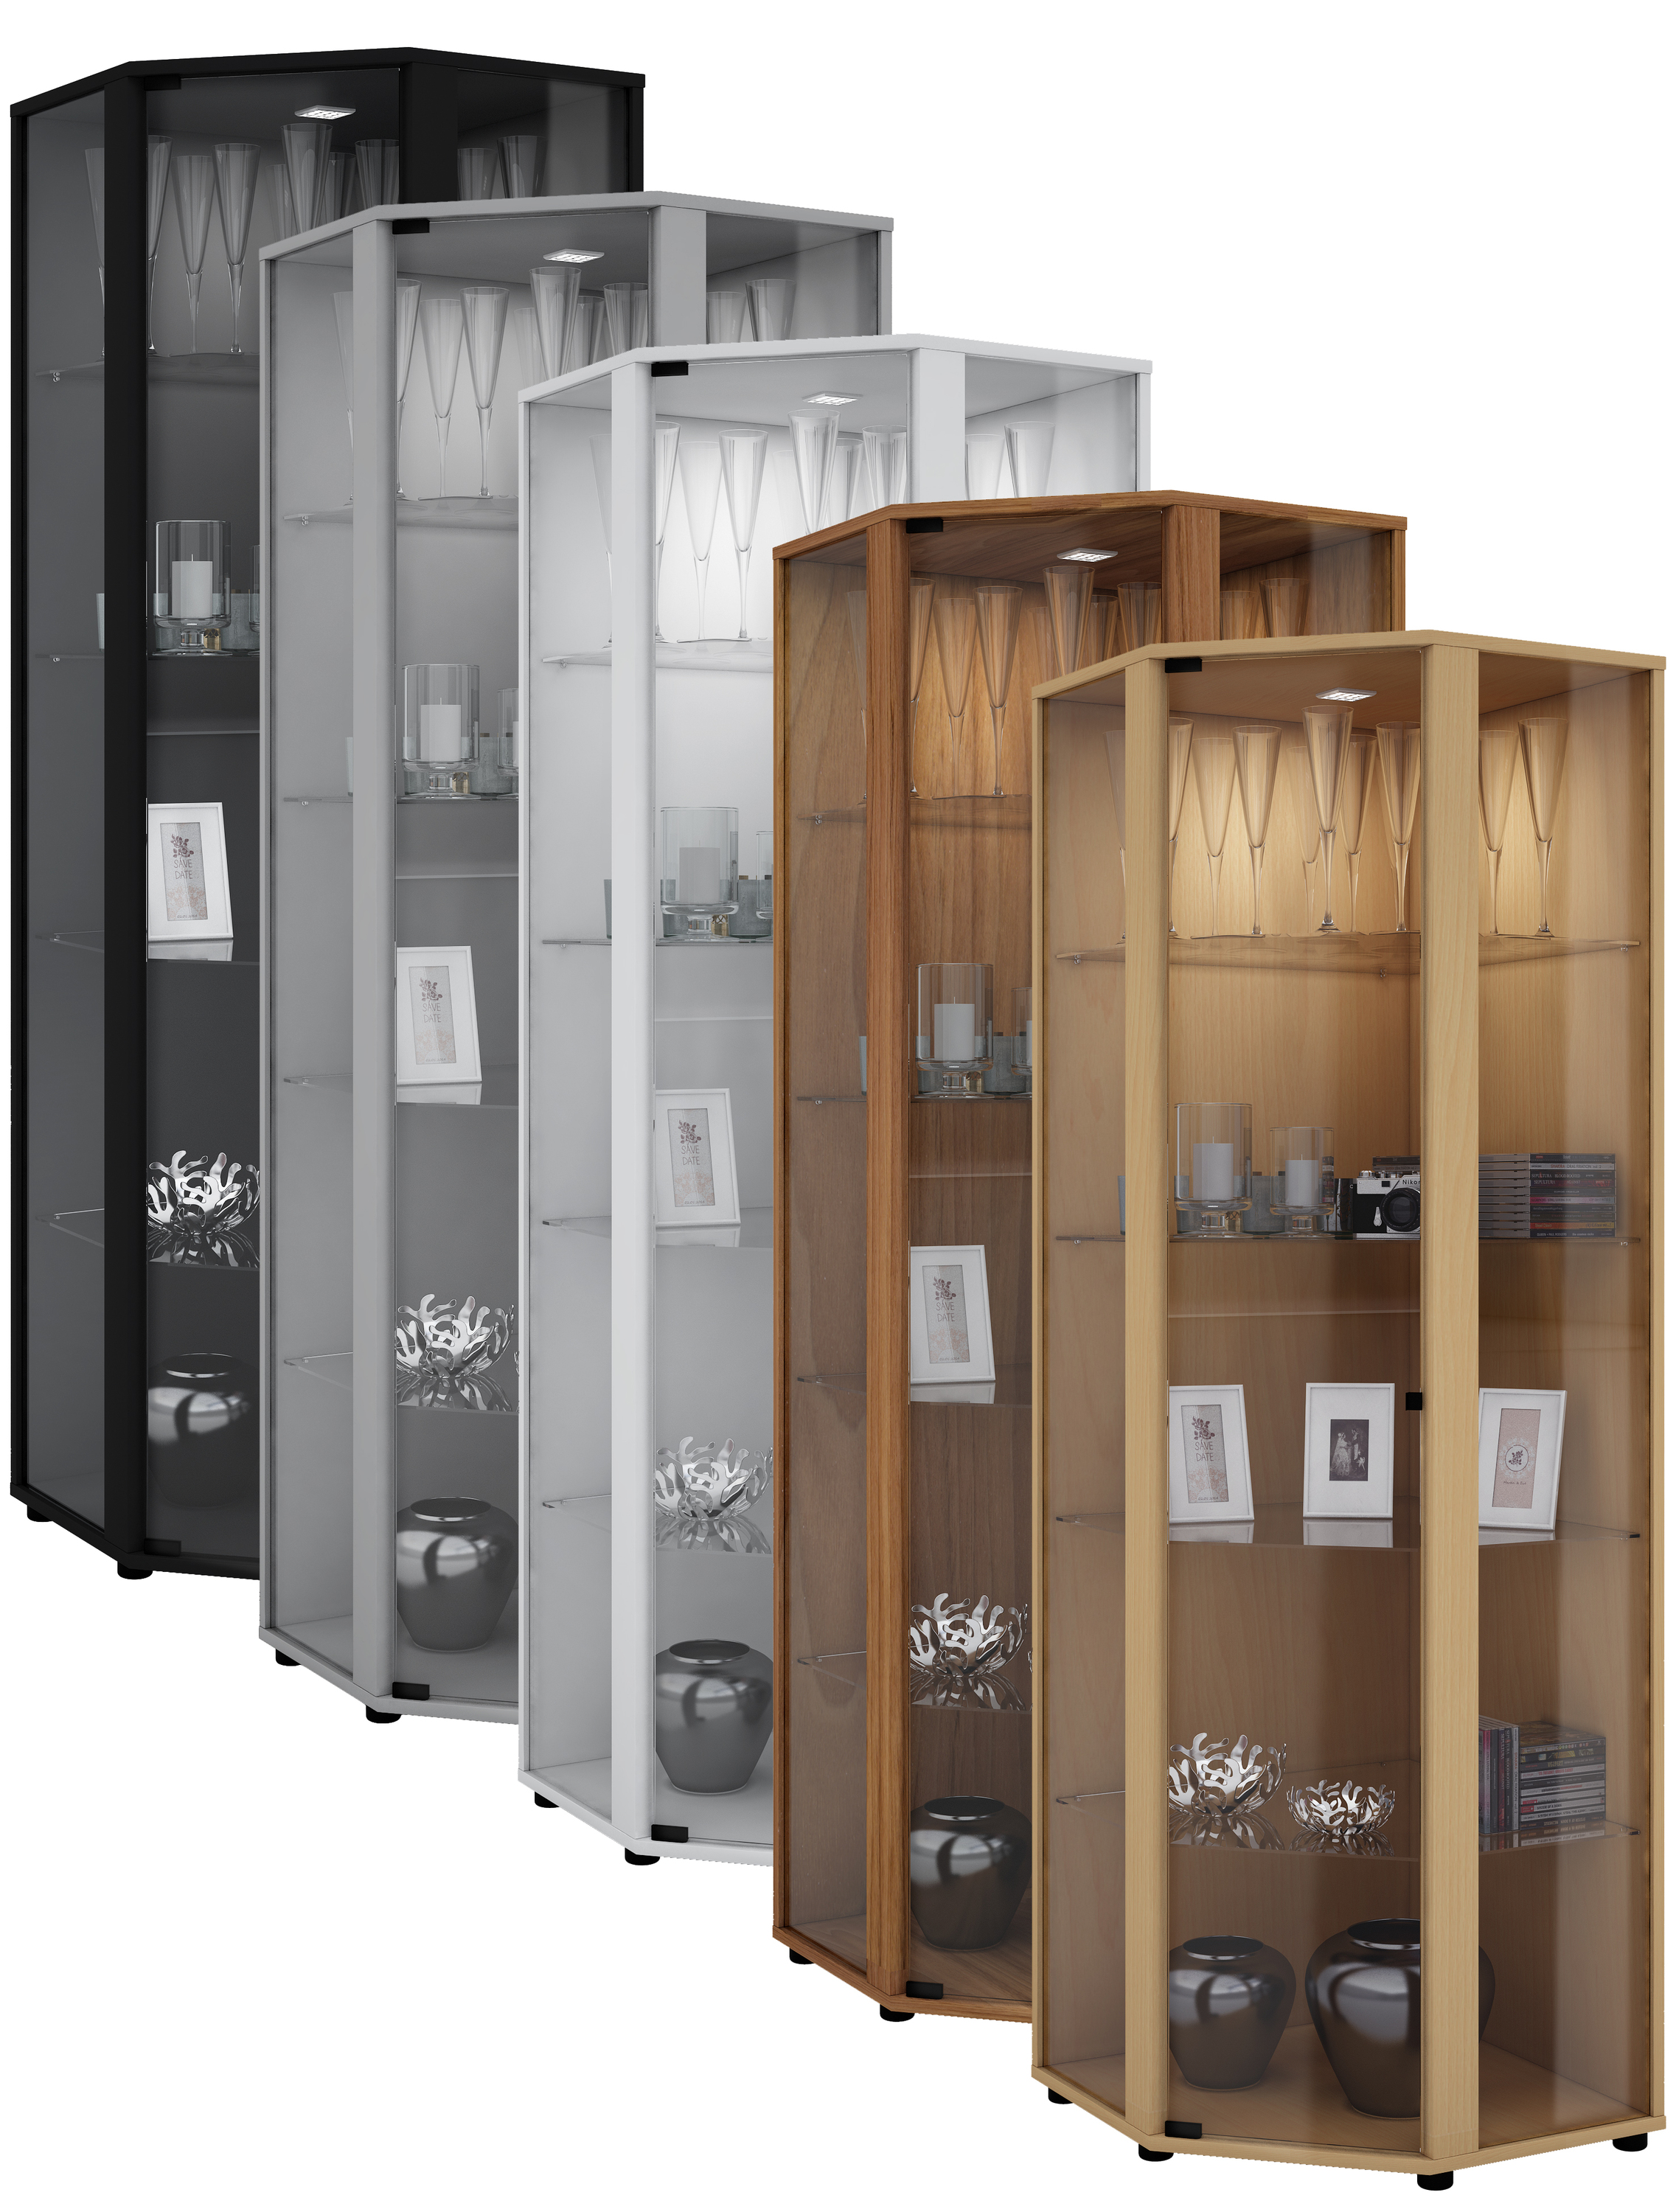 vcm gruppe vcm eckvitrine glasvitrine standvitrine schaukasten glasschrank sammelvitrine. Black Bedroom Furniture Sets. Home Design Ideas